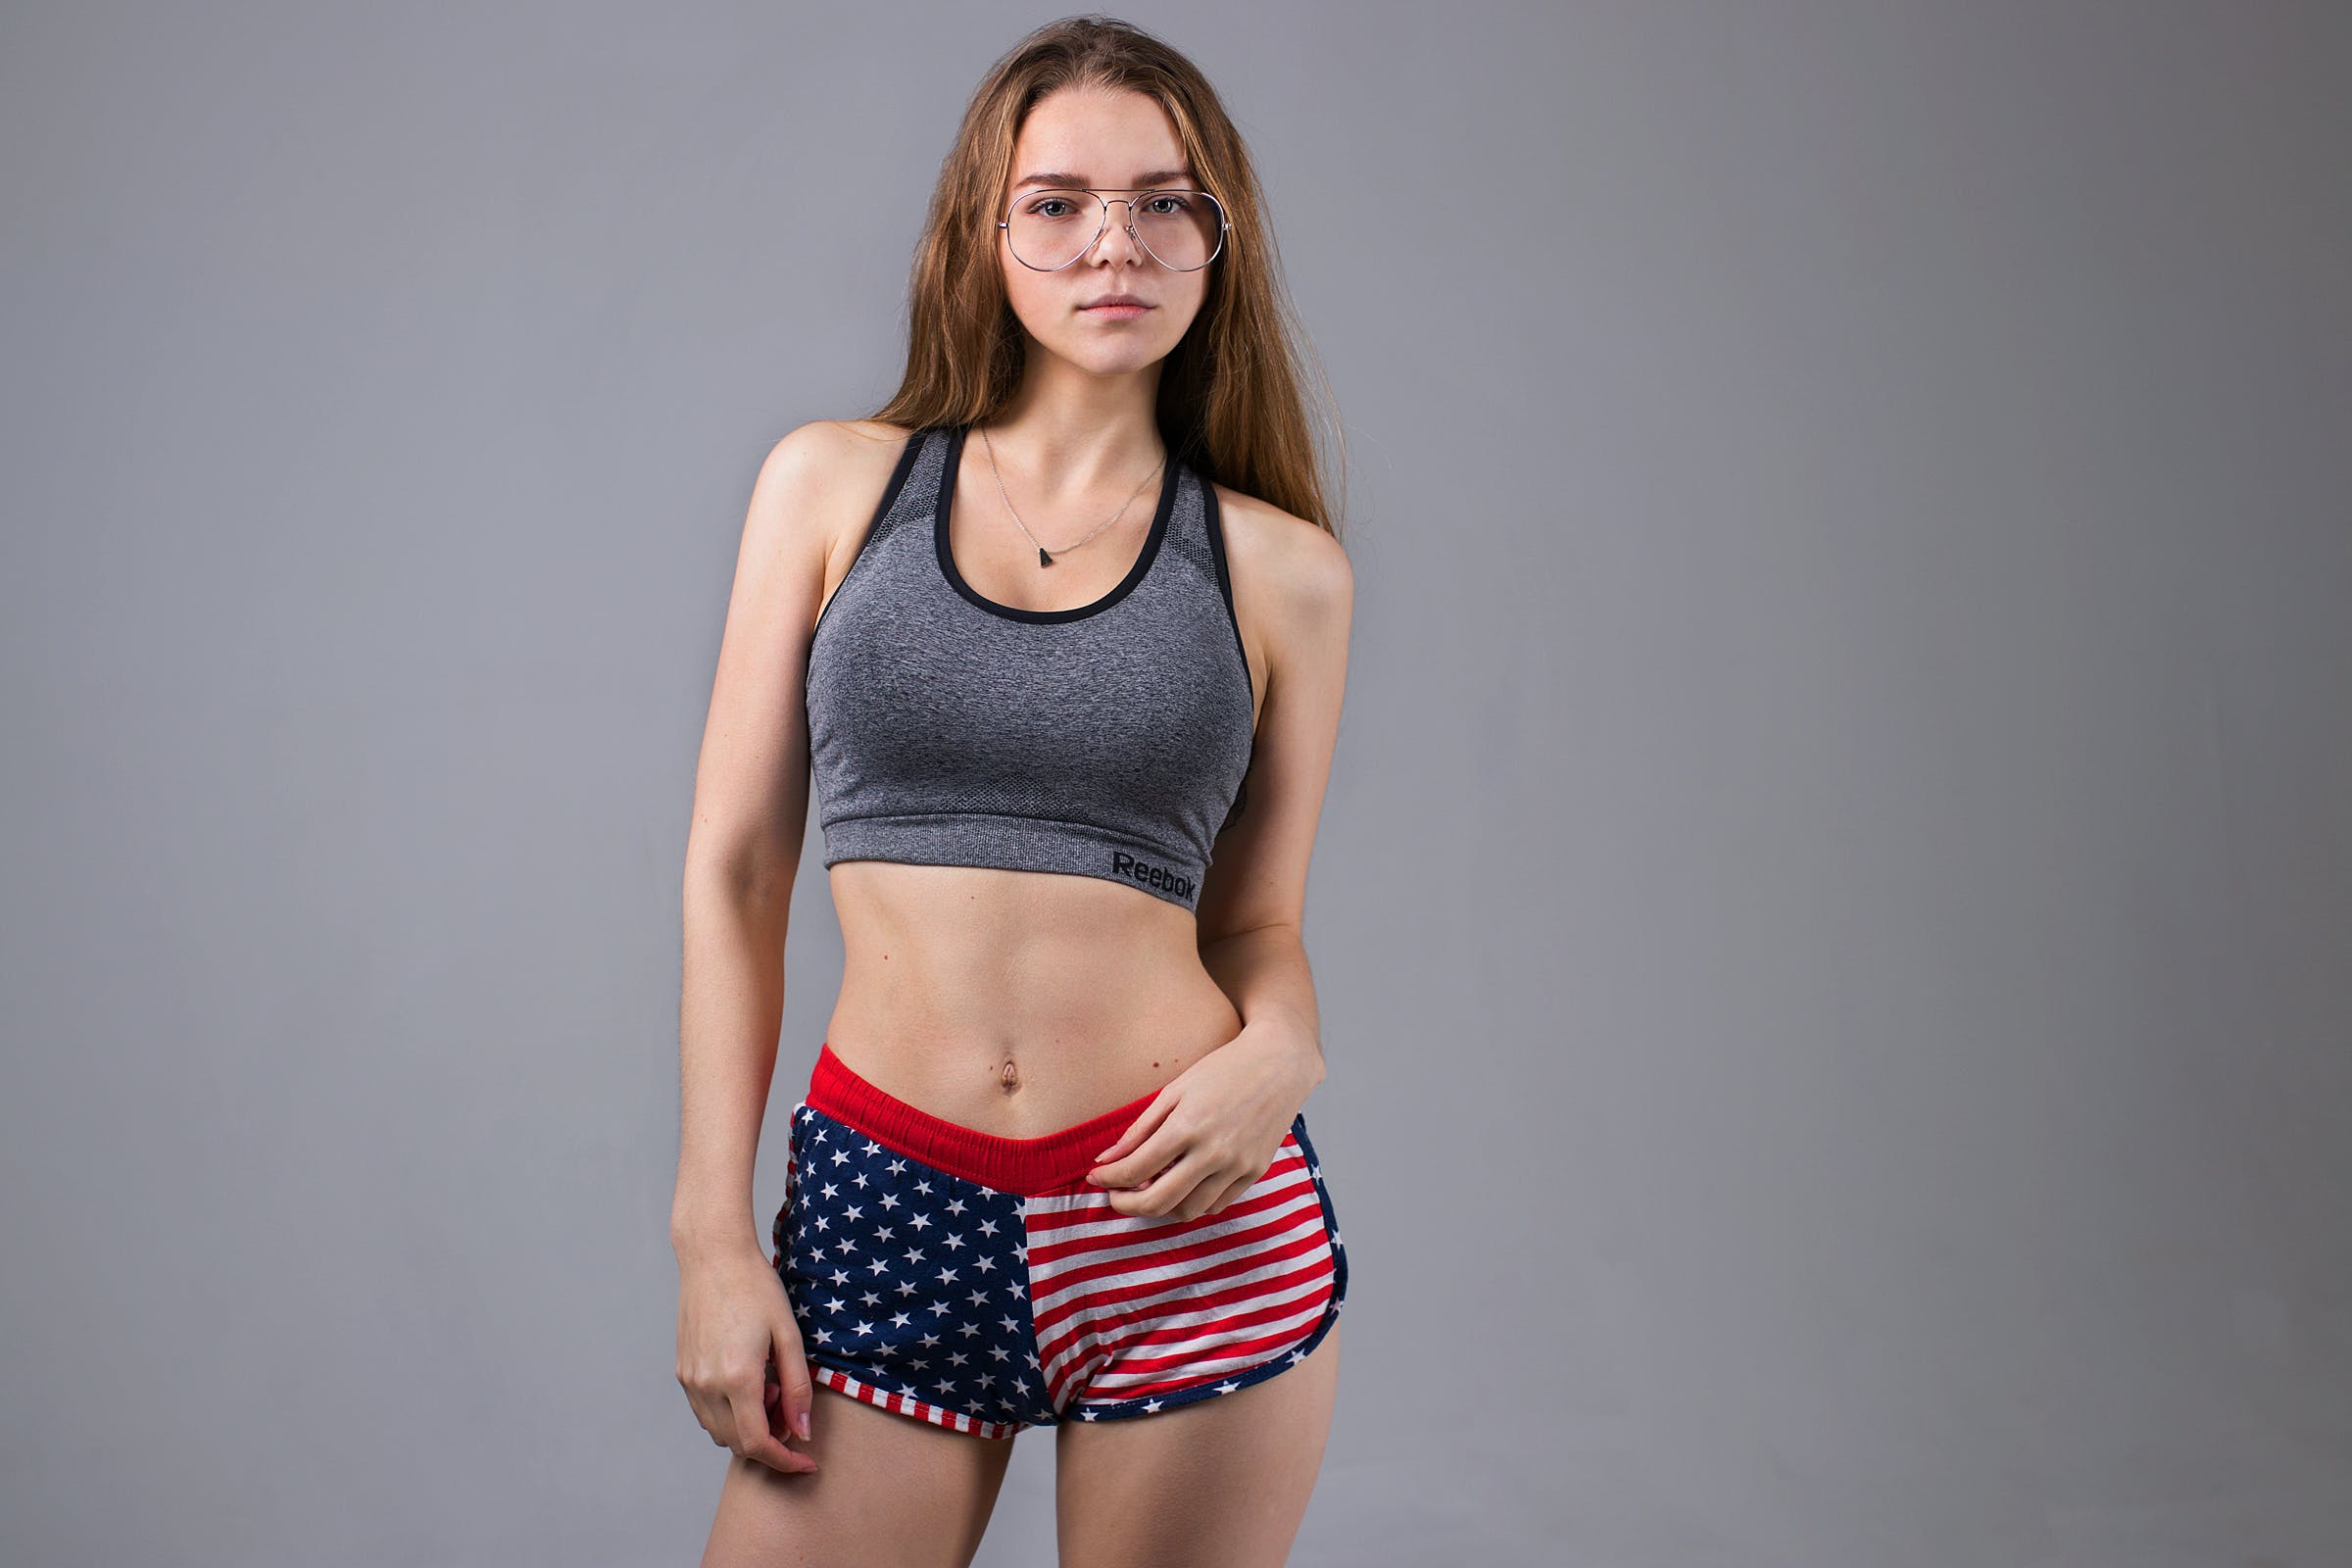 Woman Wearing Grey Sports Bra and U.s. Flag Printed Dolphin Shorts